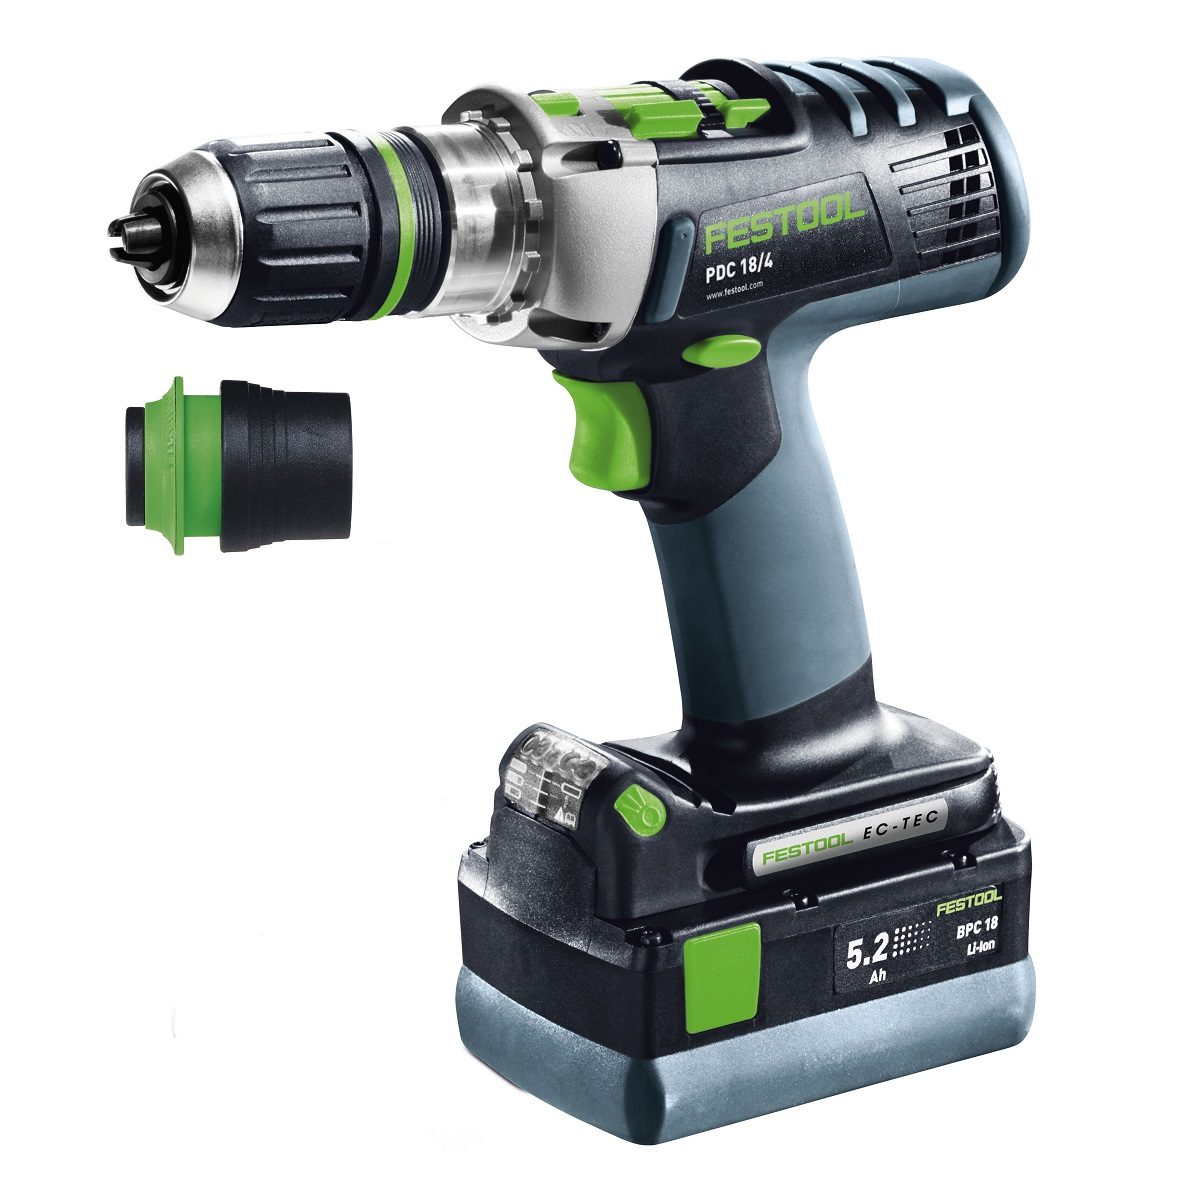 FESTOOL 769194 QUADRIVE PDC 18/4 LI 4.2 PLUS GB 18V COMBI HAMMER DRILL WITH 2X 4.2AH LI-ION BATTERIES